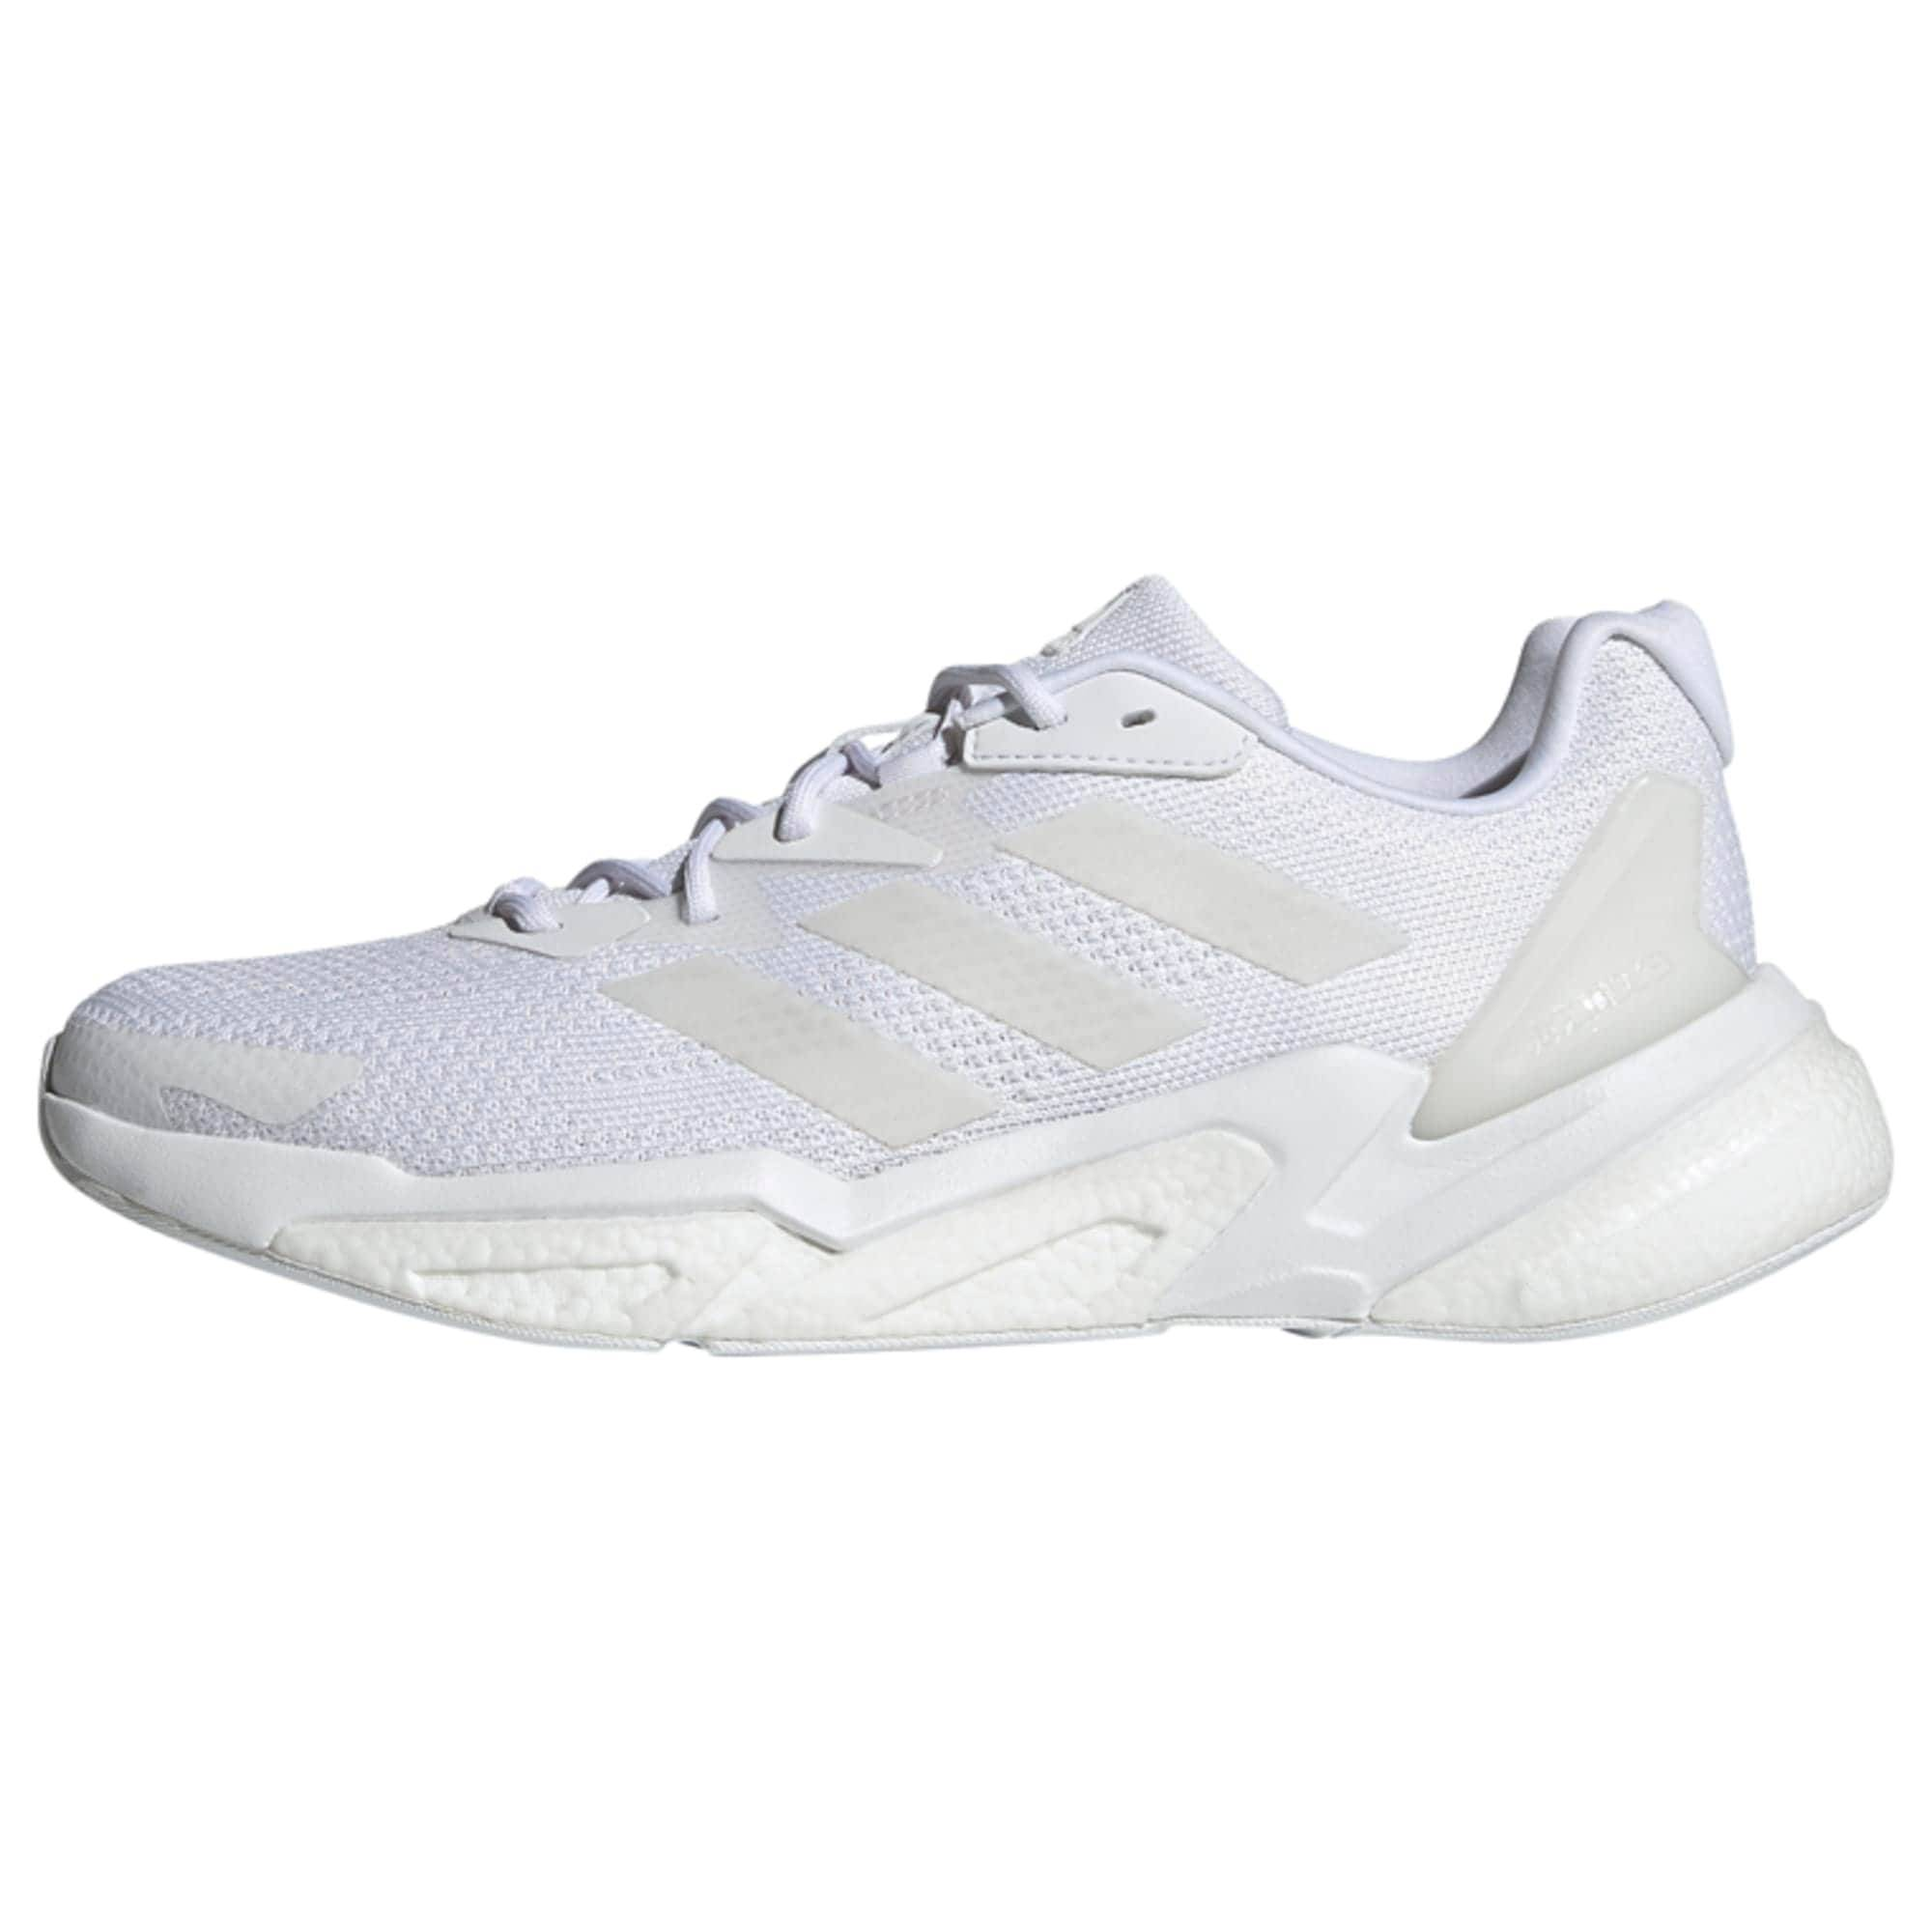 ADIDAS PERFORMANCE Chaussure de course  - Blanc - Taille: 6.5 - male